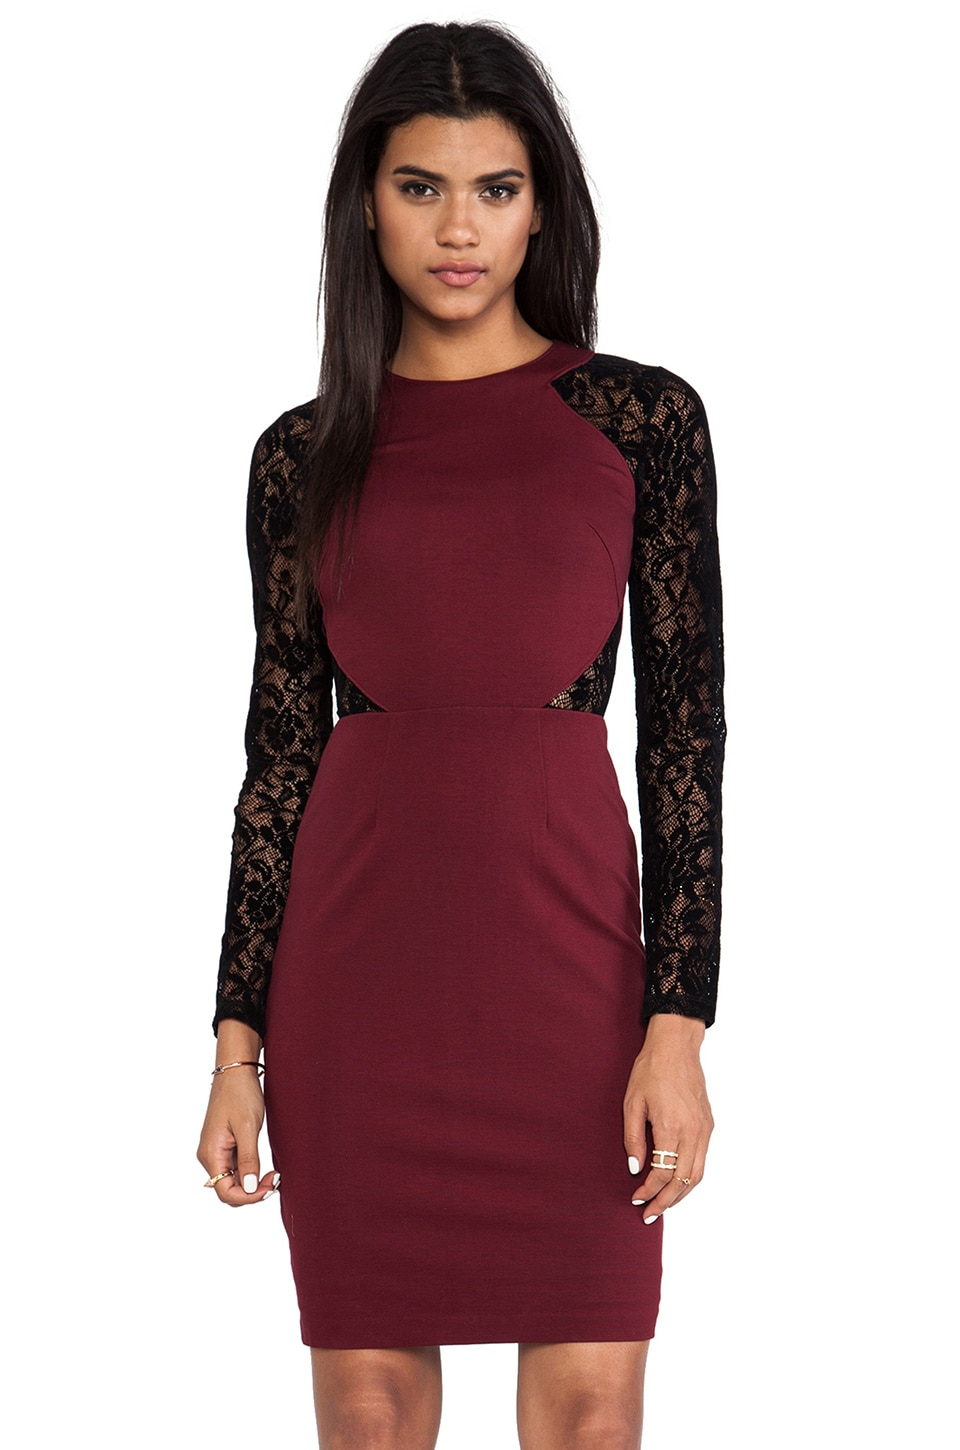 Alice by Temperley Solitaire Dress in Bordeaux